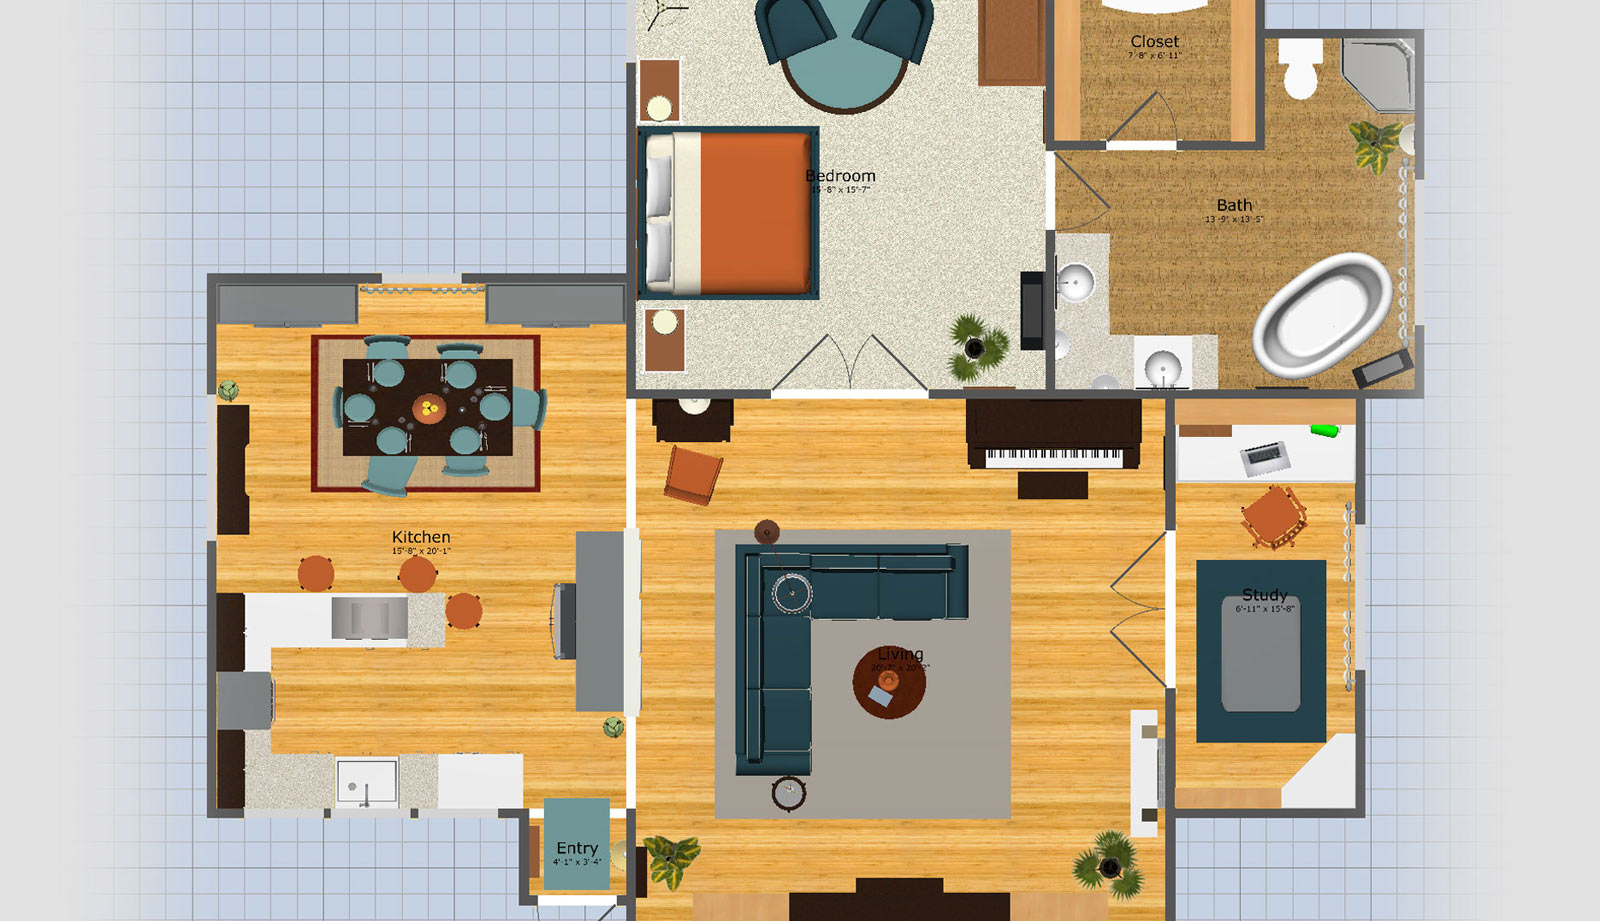 Floorplan view of Room Planner